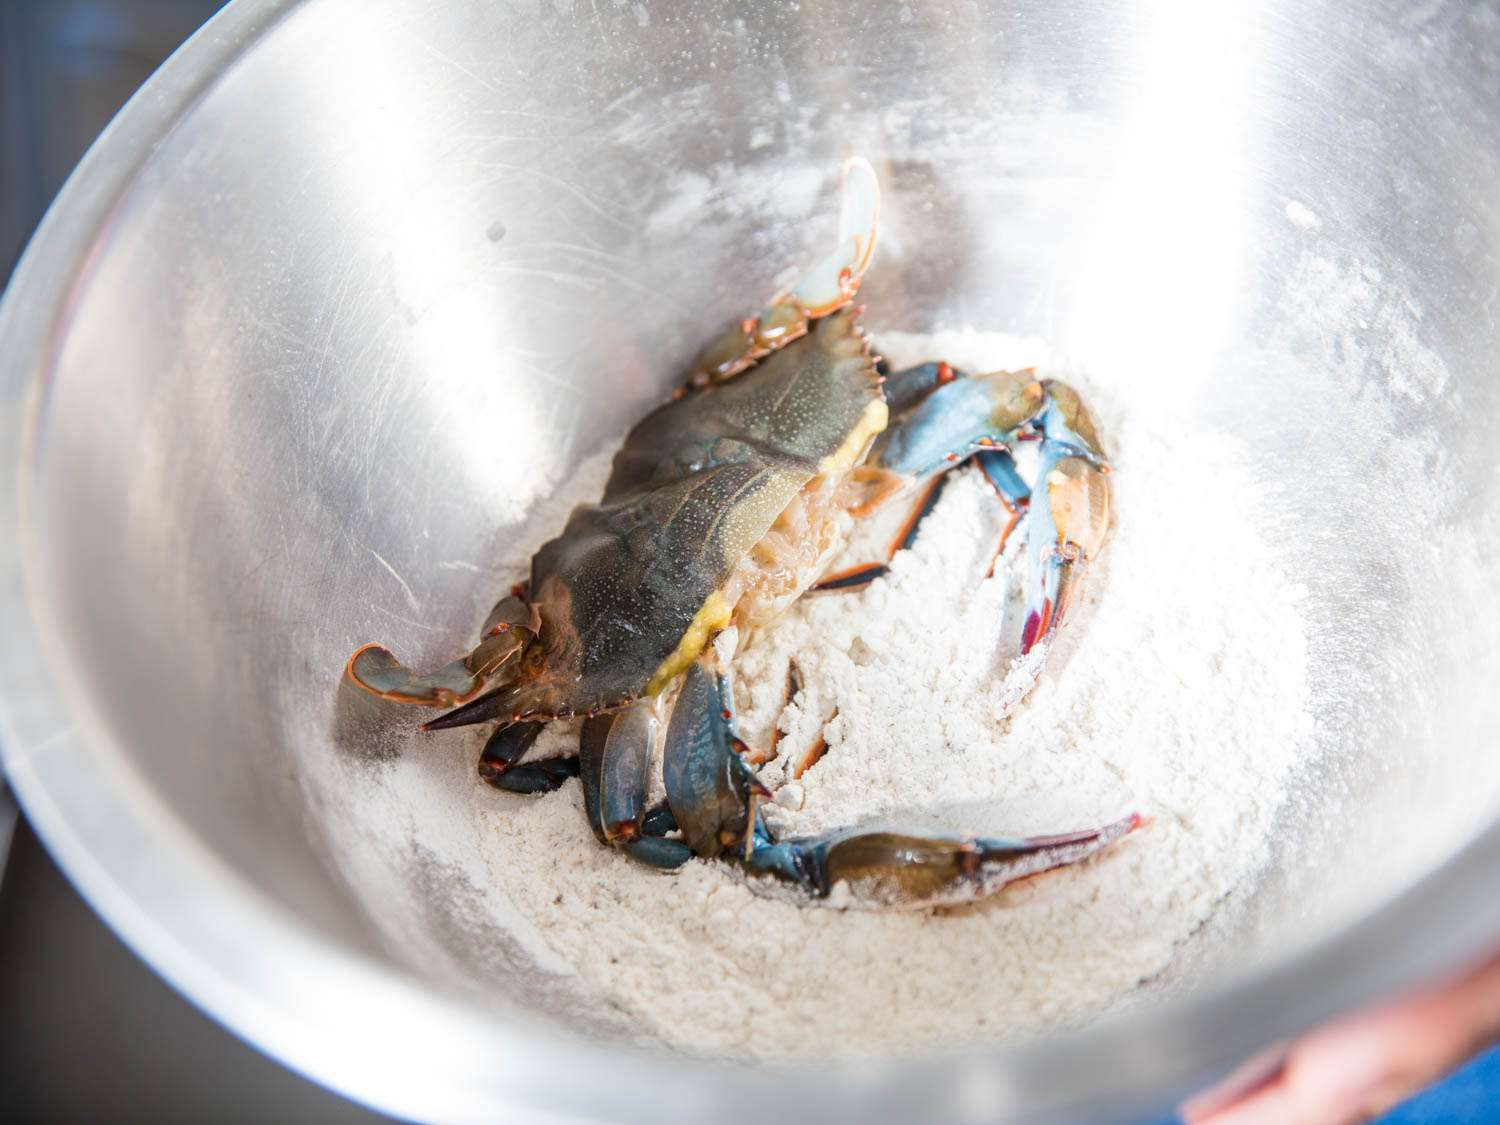 20190426-soft-shell-crab-butter-capers-vicky-wasik-1